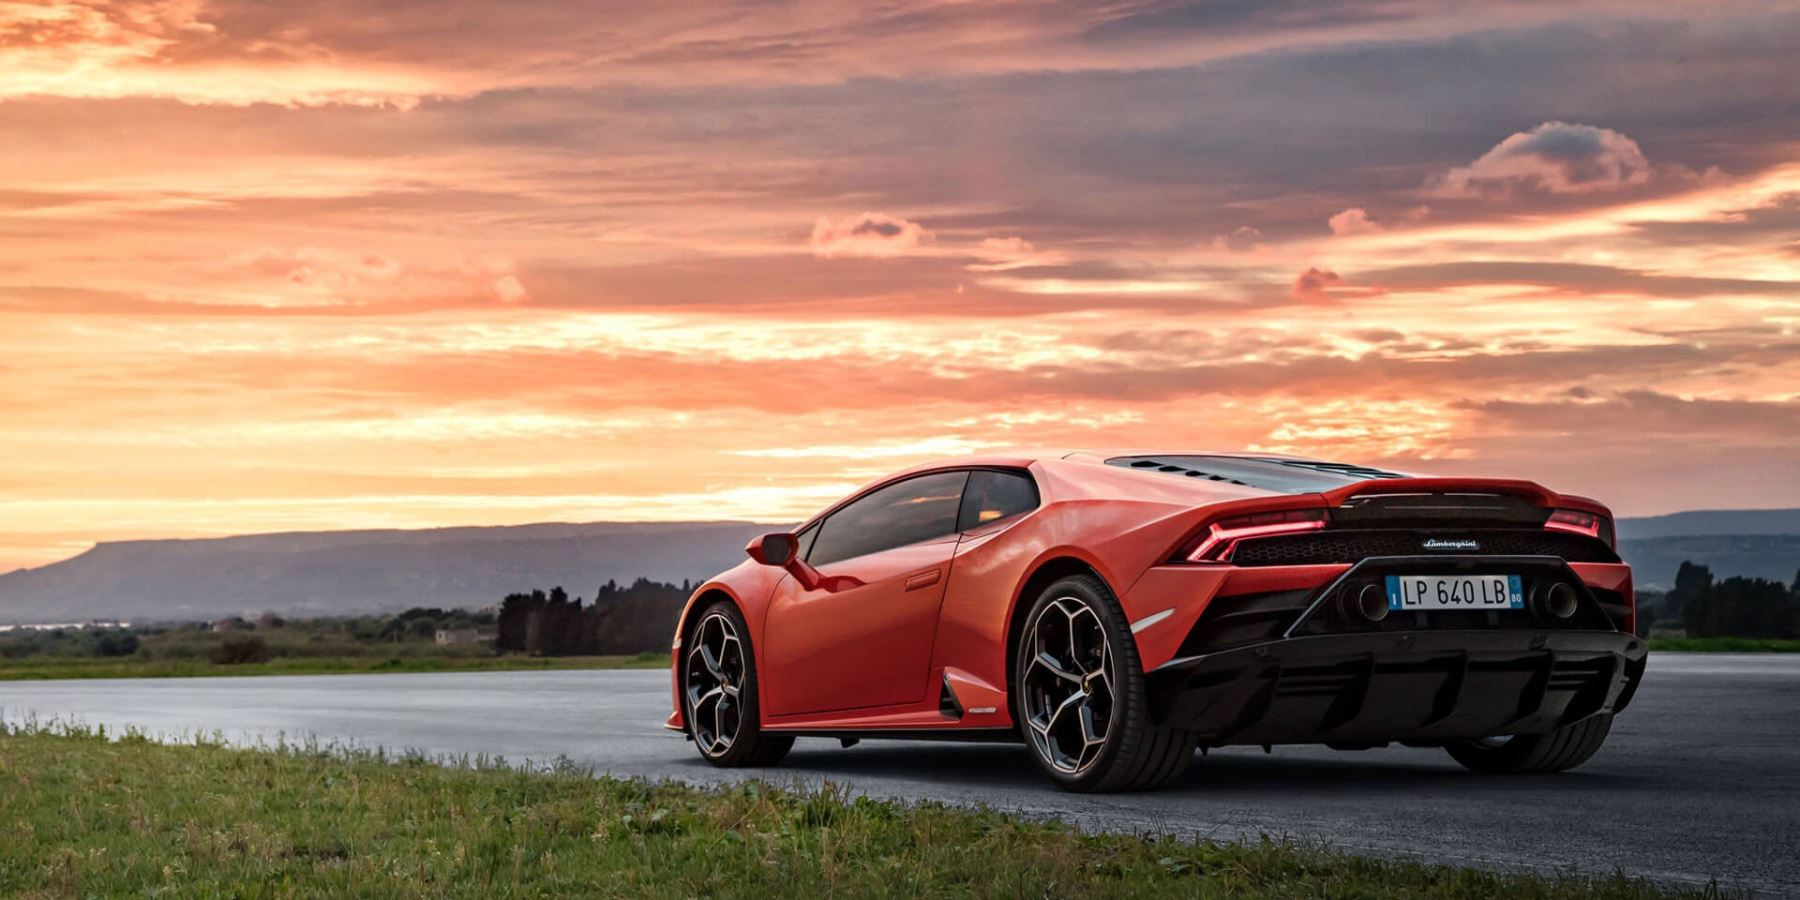 Lamborghini Huracan EVO - Every Day Amplified image 9